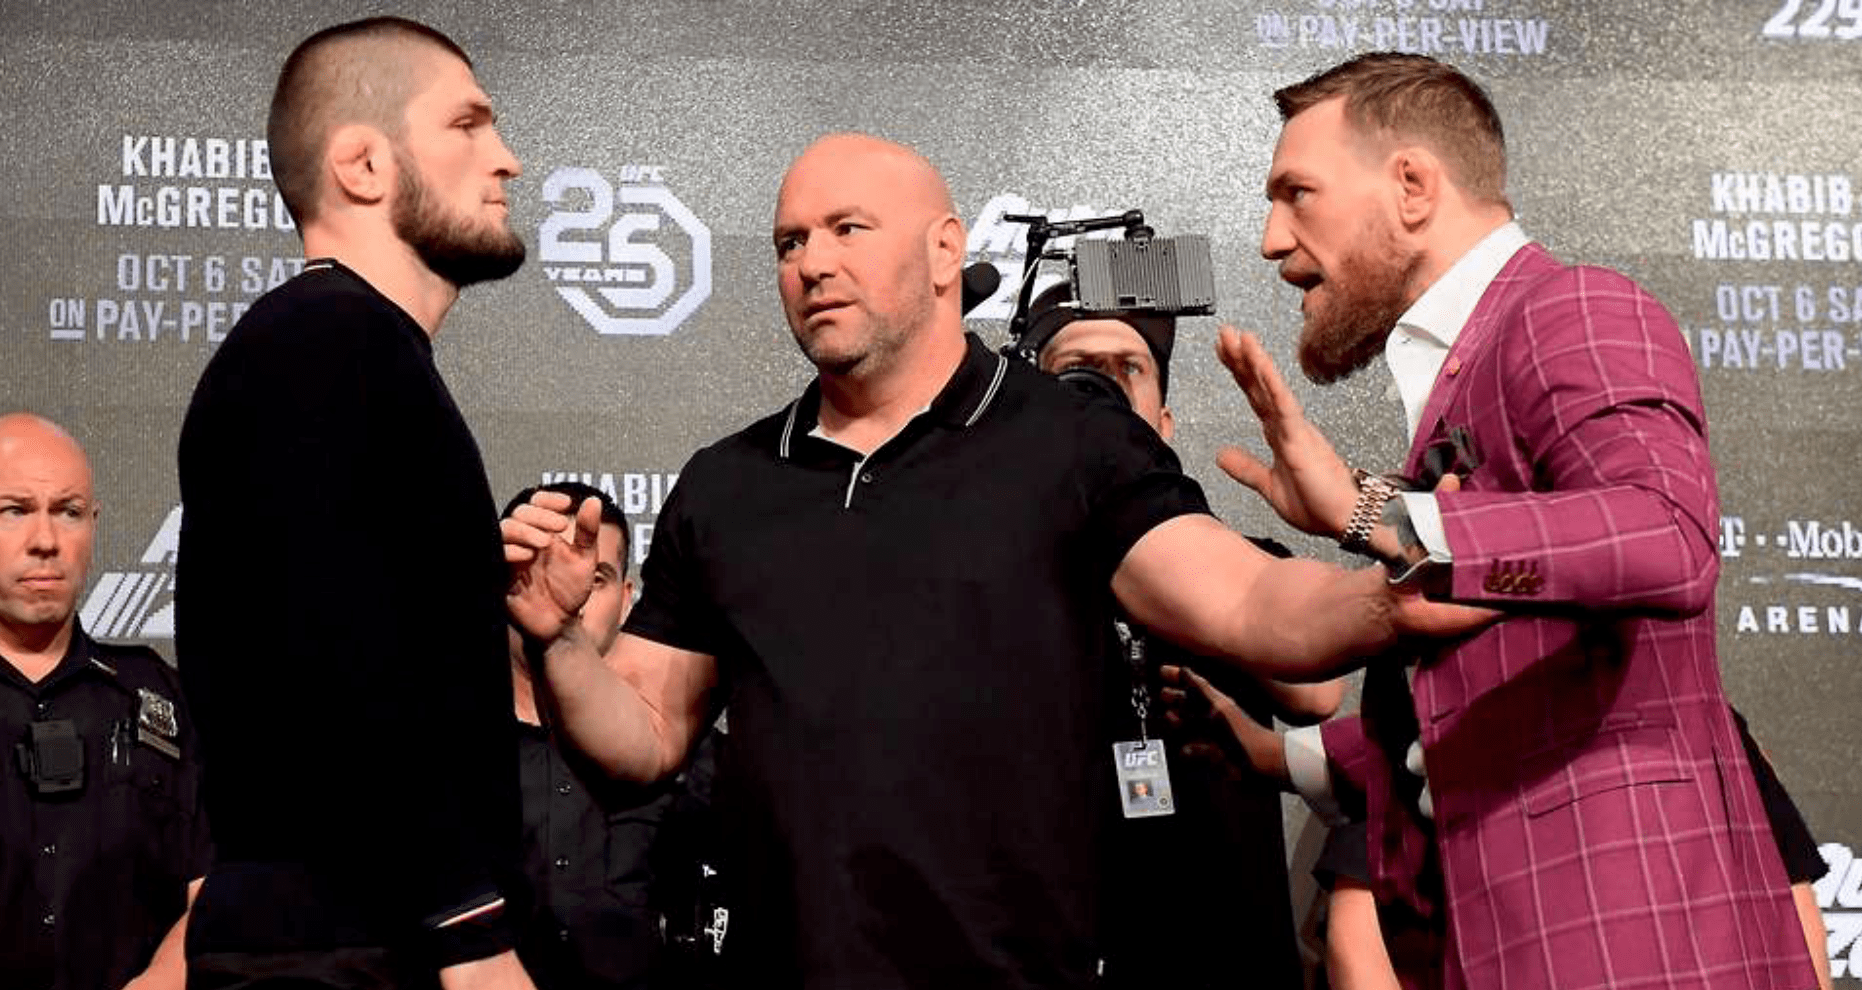 Dana White Talks Khabib Being 'The Man', Options For McGregor